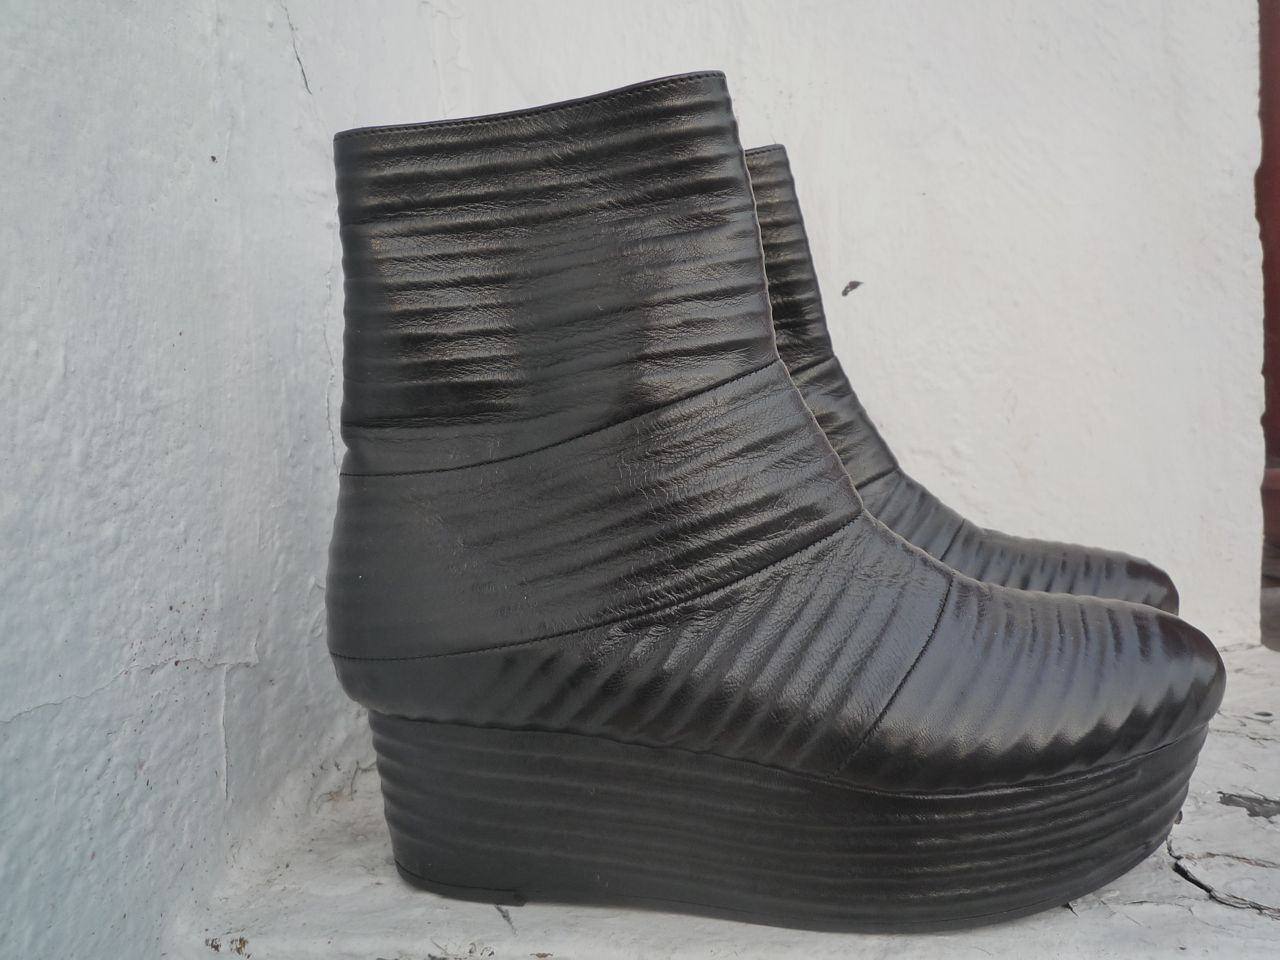 VIC MATIÉ EMBOSSED LEATHER PLATFORM 36 BOOTS SIZE 36 PLATFORM f1985f